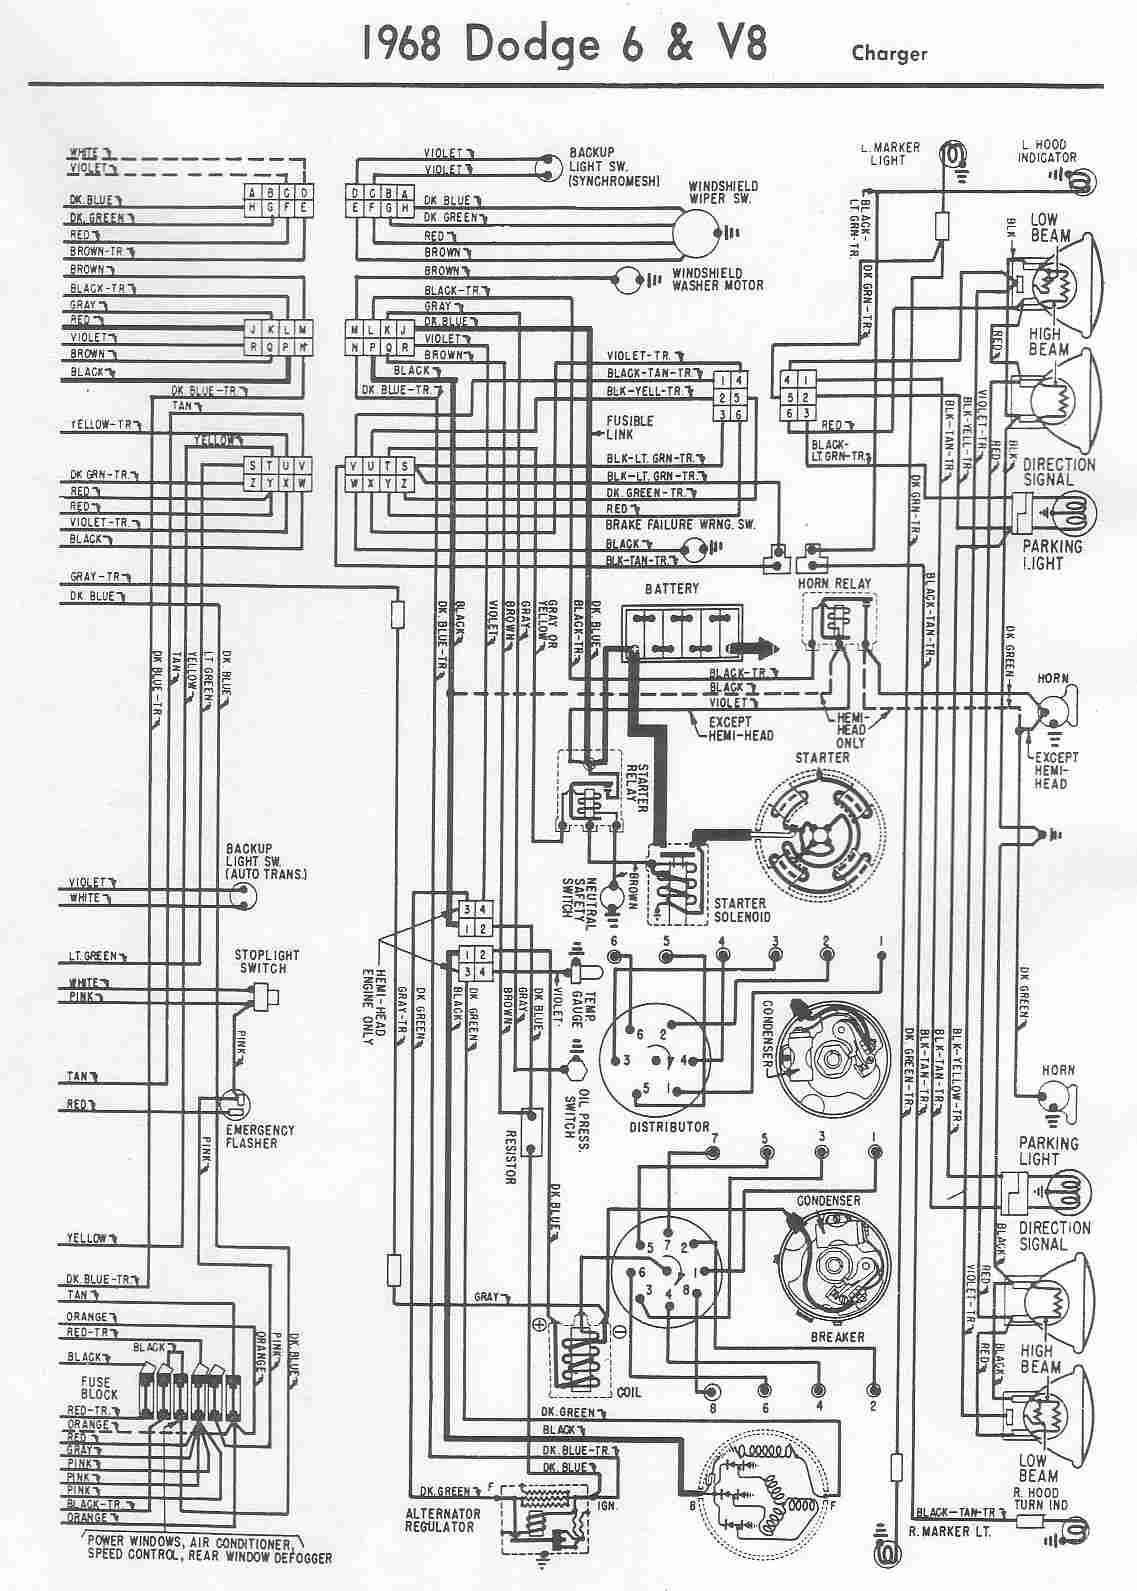 2008 Dodge Magnum Fuse Box Diagram Simple Guide About Wiring Ram 1972 Dart Dash Harness 35